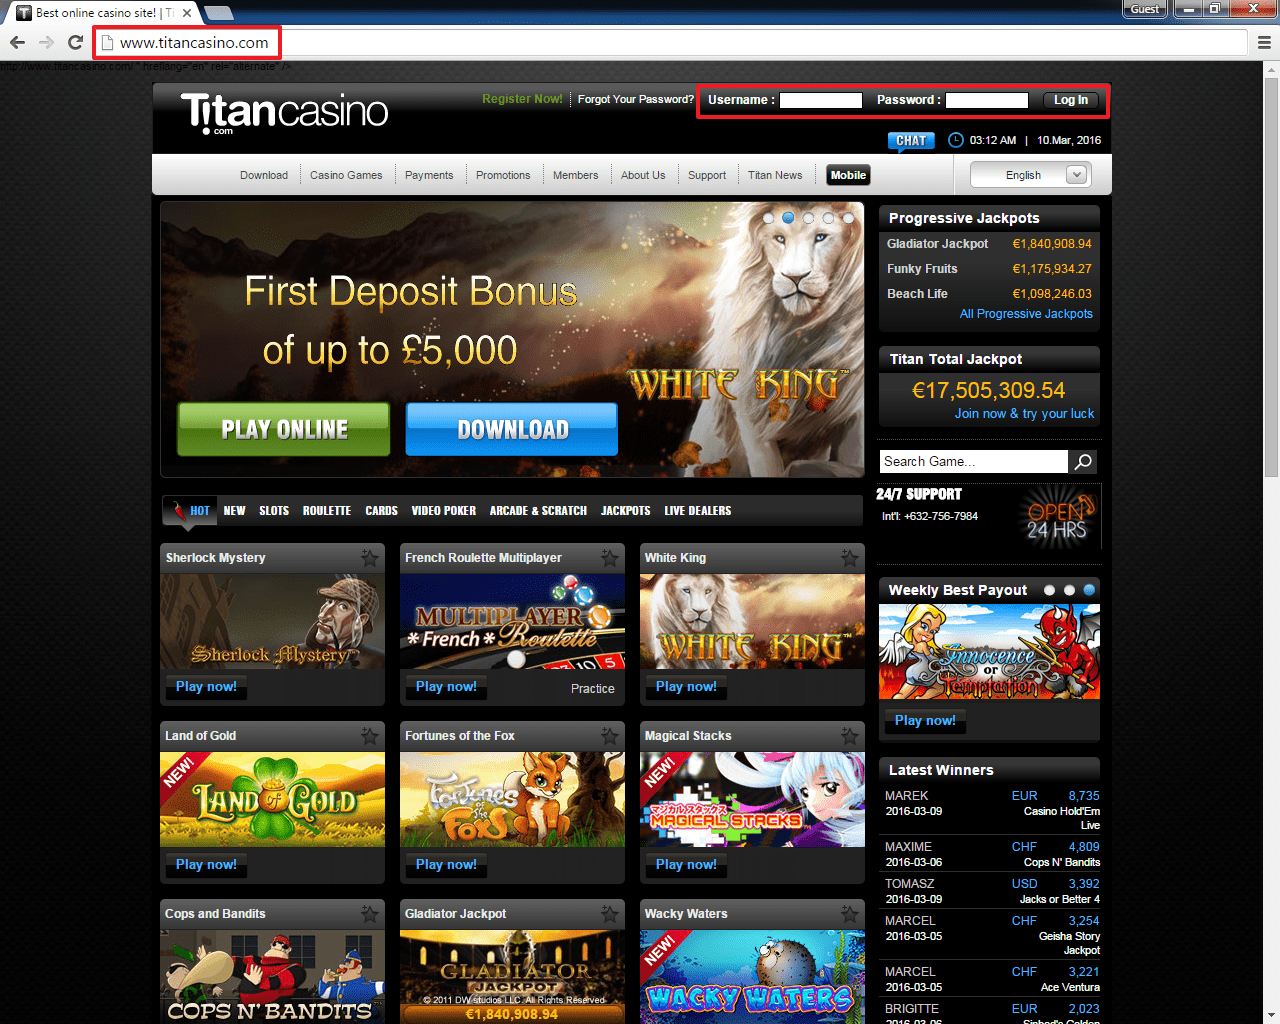 titan casino download